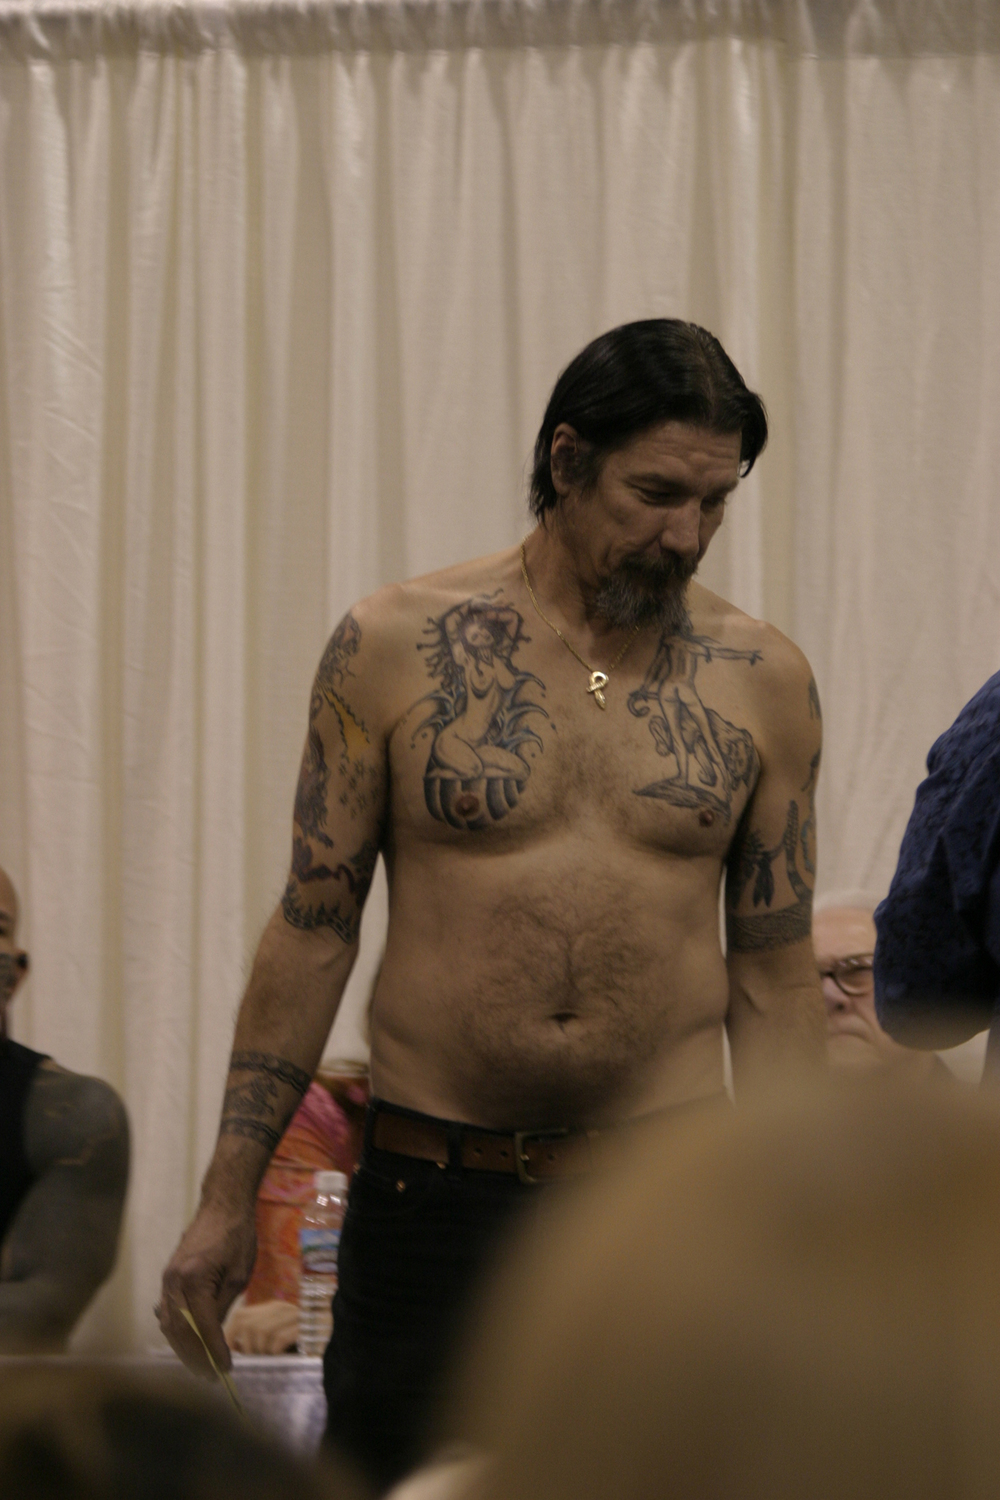 Tattoo_Expo029.JPG